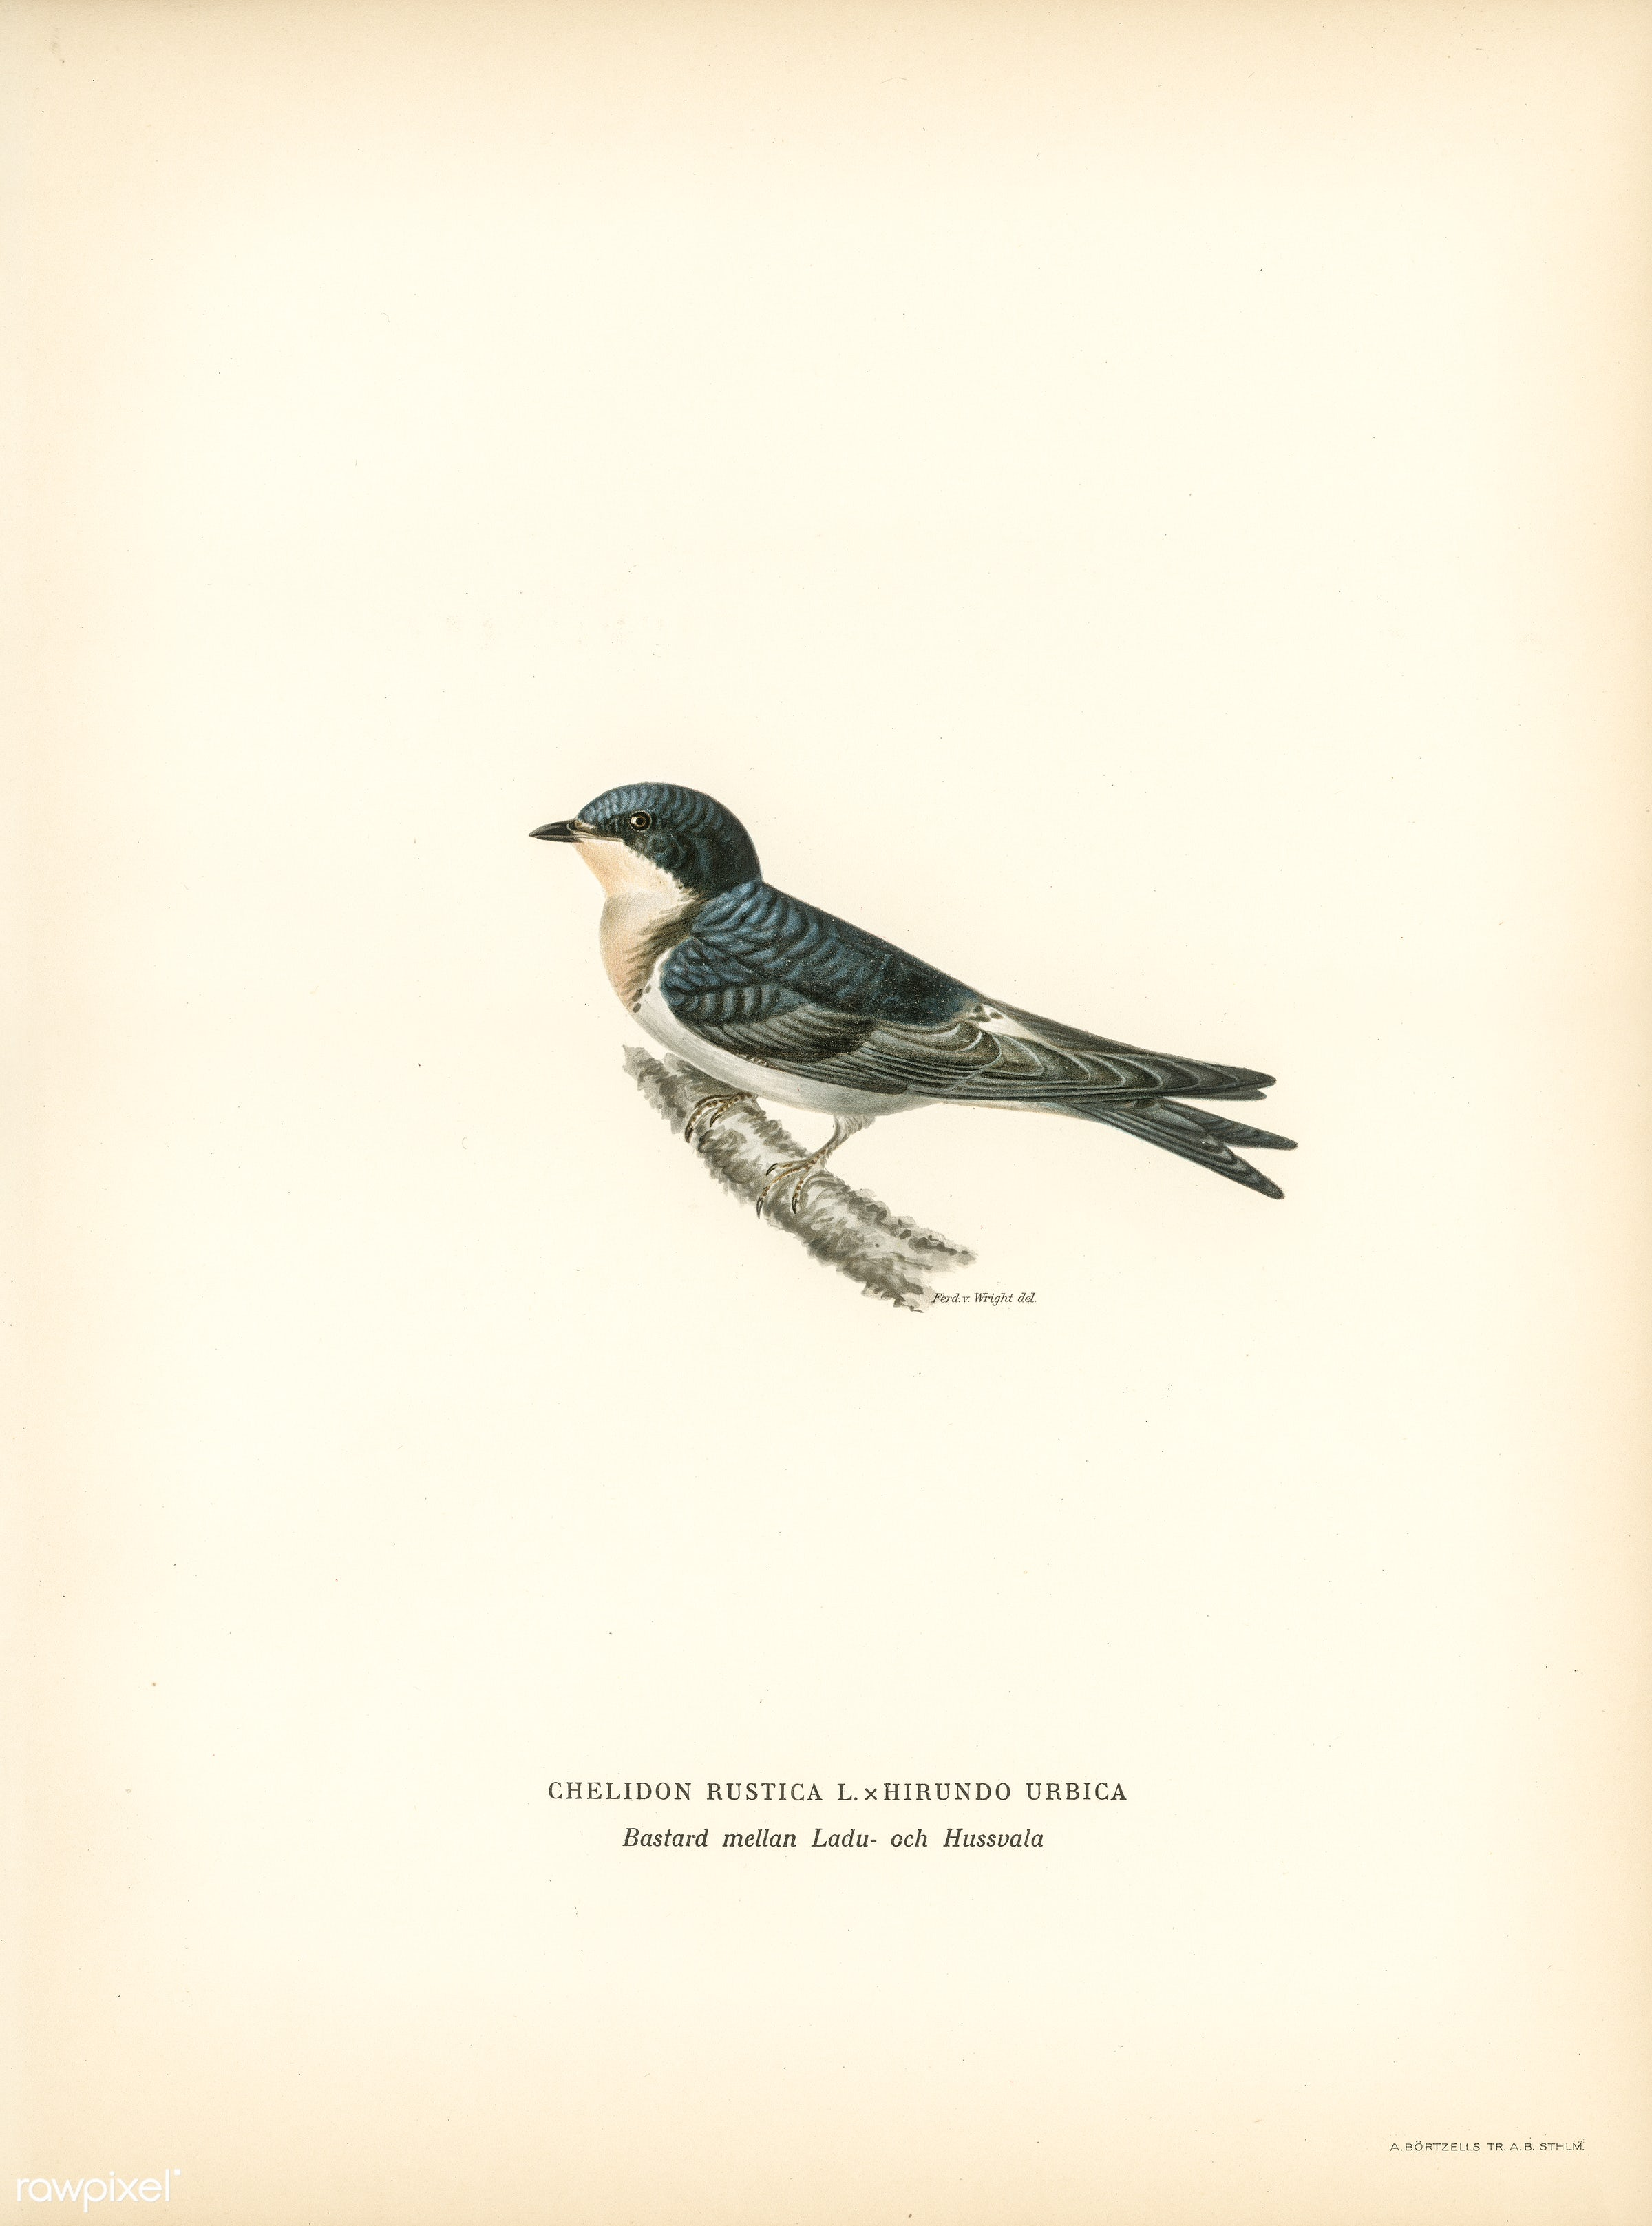 Hybrid between common house-martin and barn swallow (Chelidon rustica L.xHirundo urbica) illustrated by the von Wright...